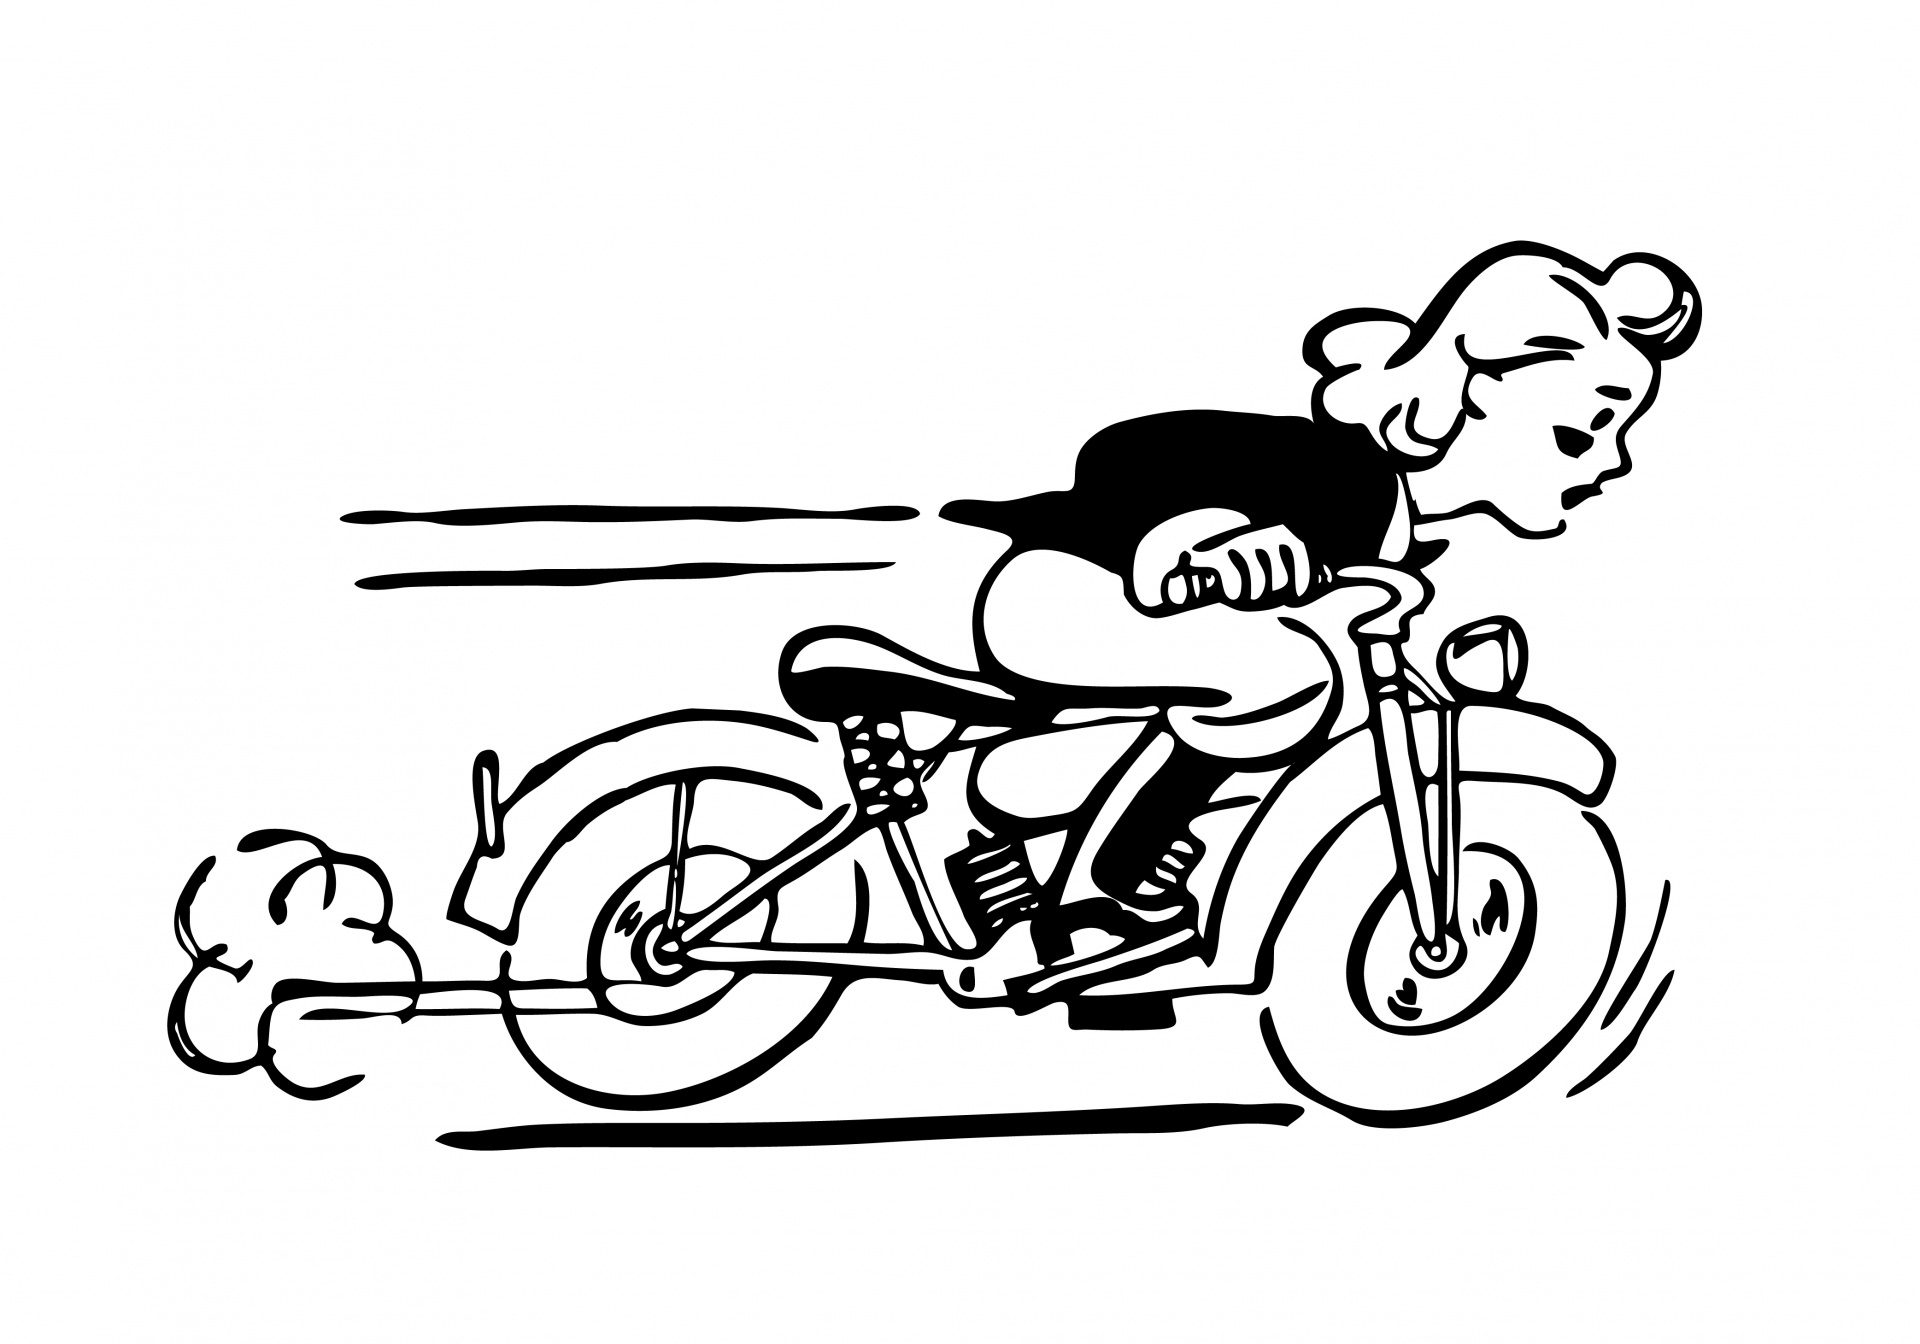 1920x1344 Motorcycle Black And White Harley Motorcycle Silhouette Vector